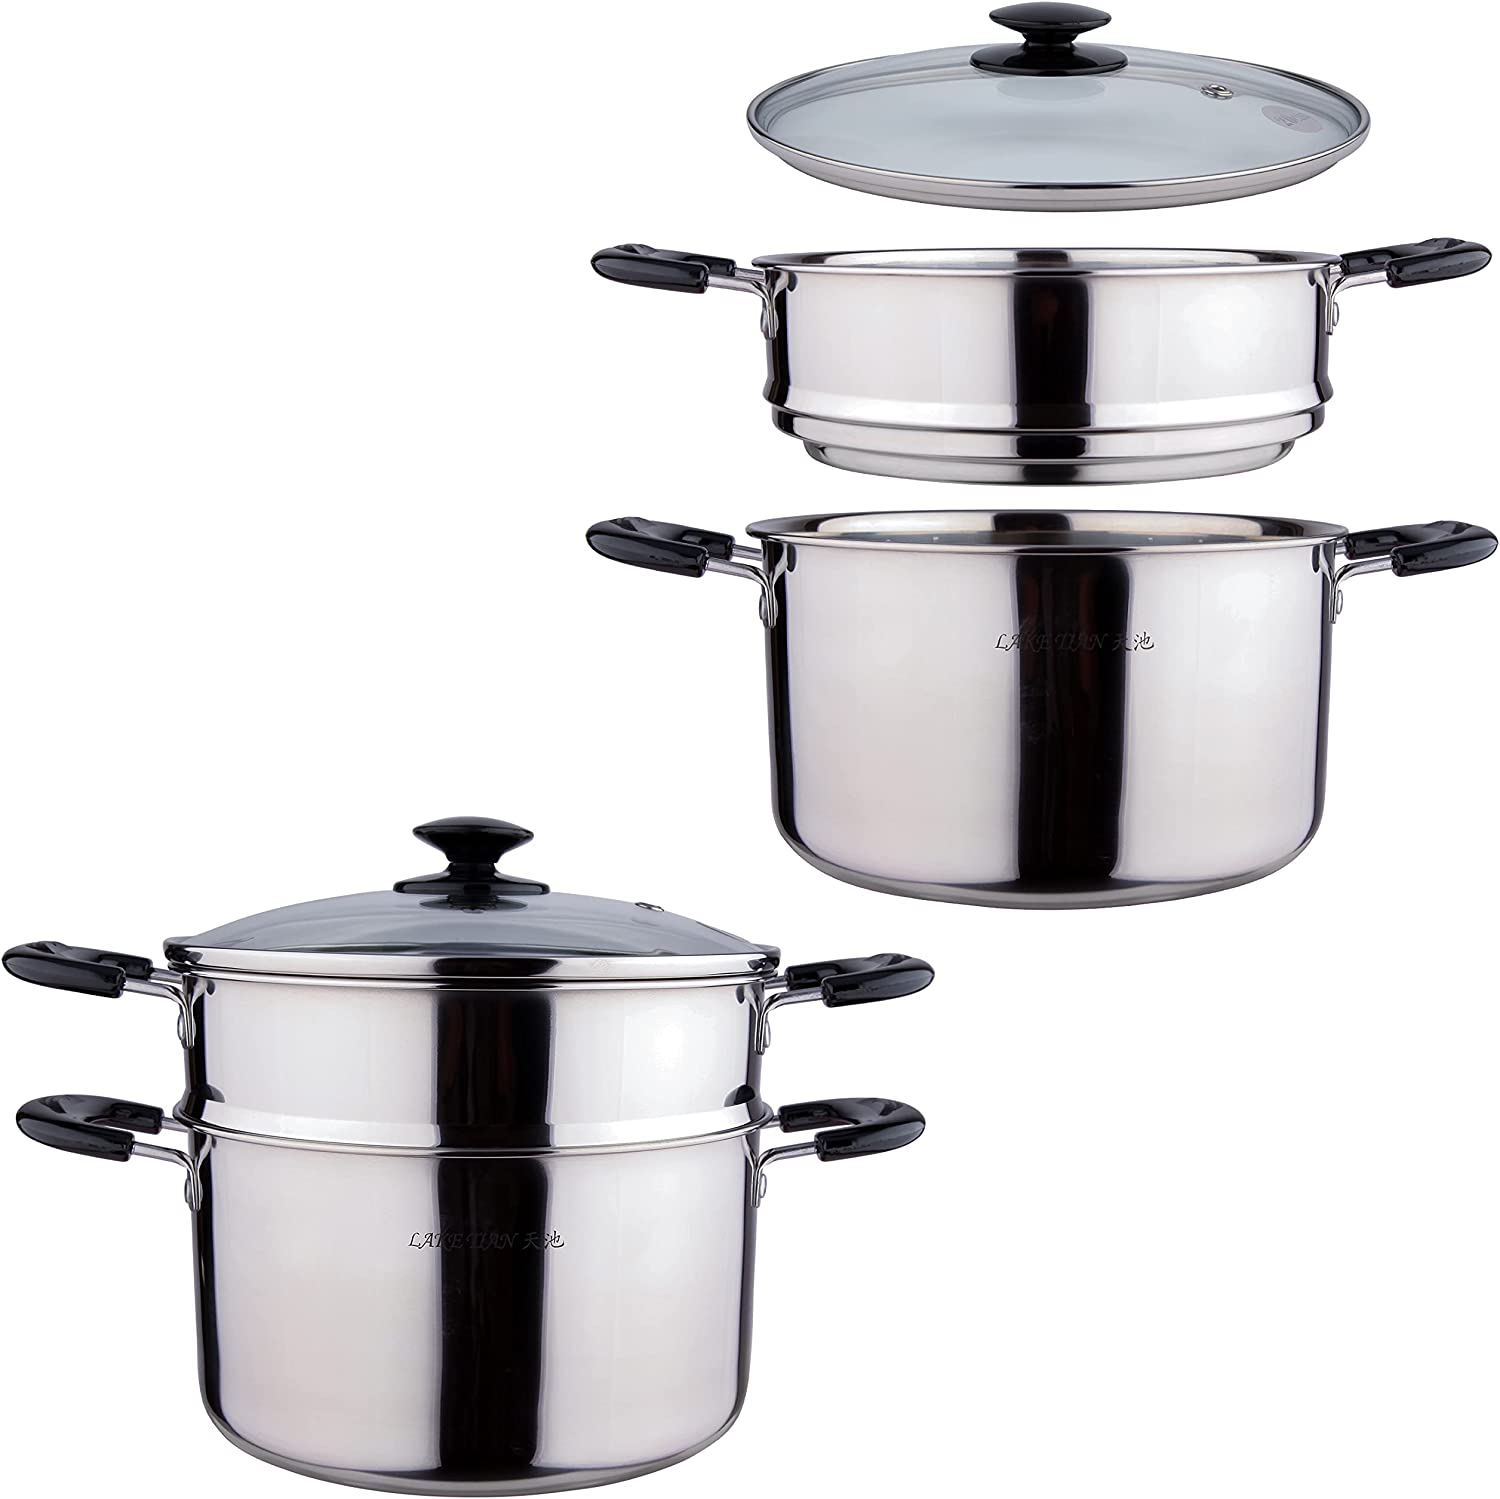 2 Tier Stainless Steel Universal Steamer with Lid, Stackable Cookware Food Steamer Pot For Cooking Pots/Saucepan, Dumpling Steamer, Vegetable Steamer, Multi-layer Dorm Apartment By LakeTian (5 qt)